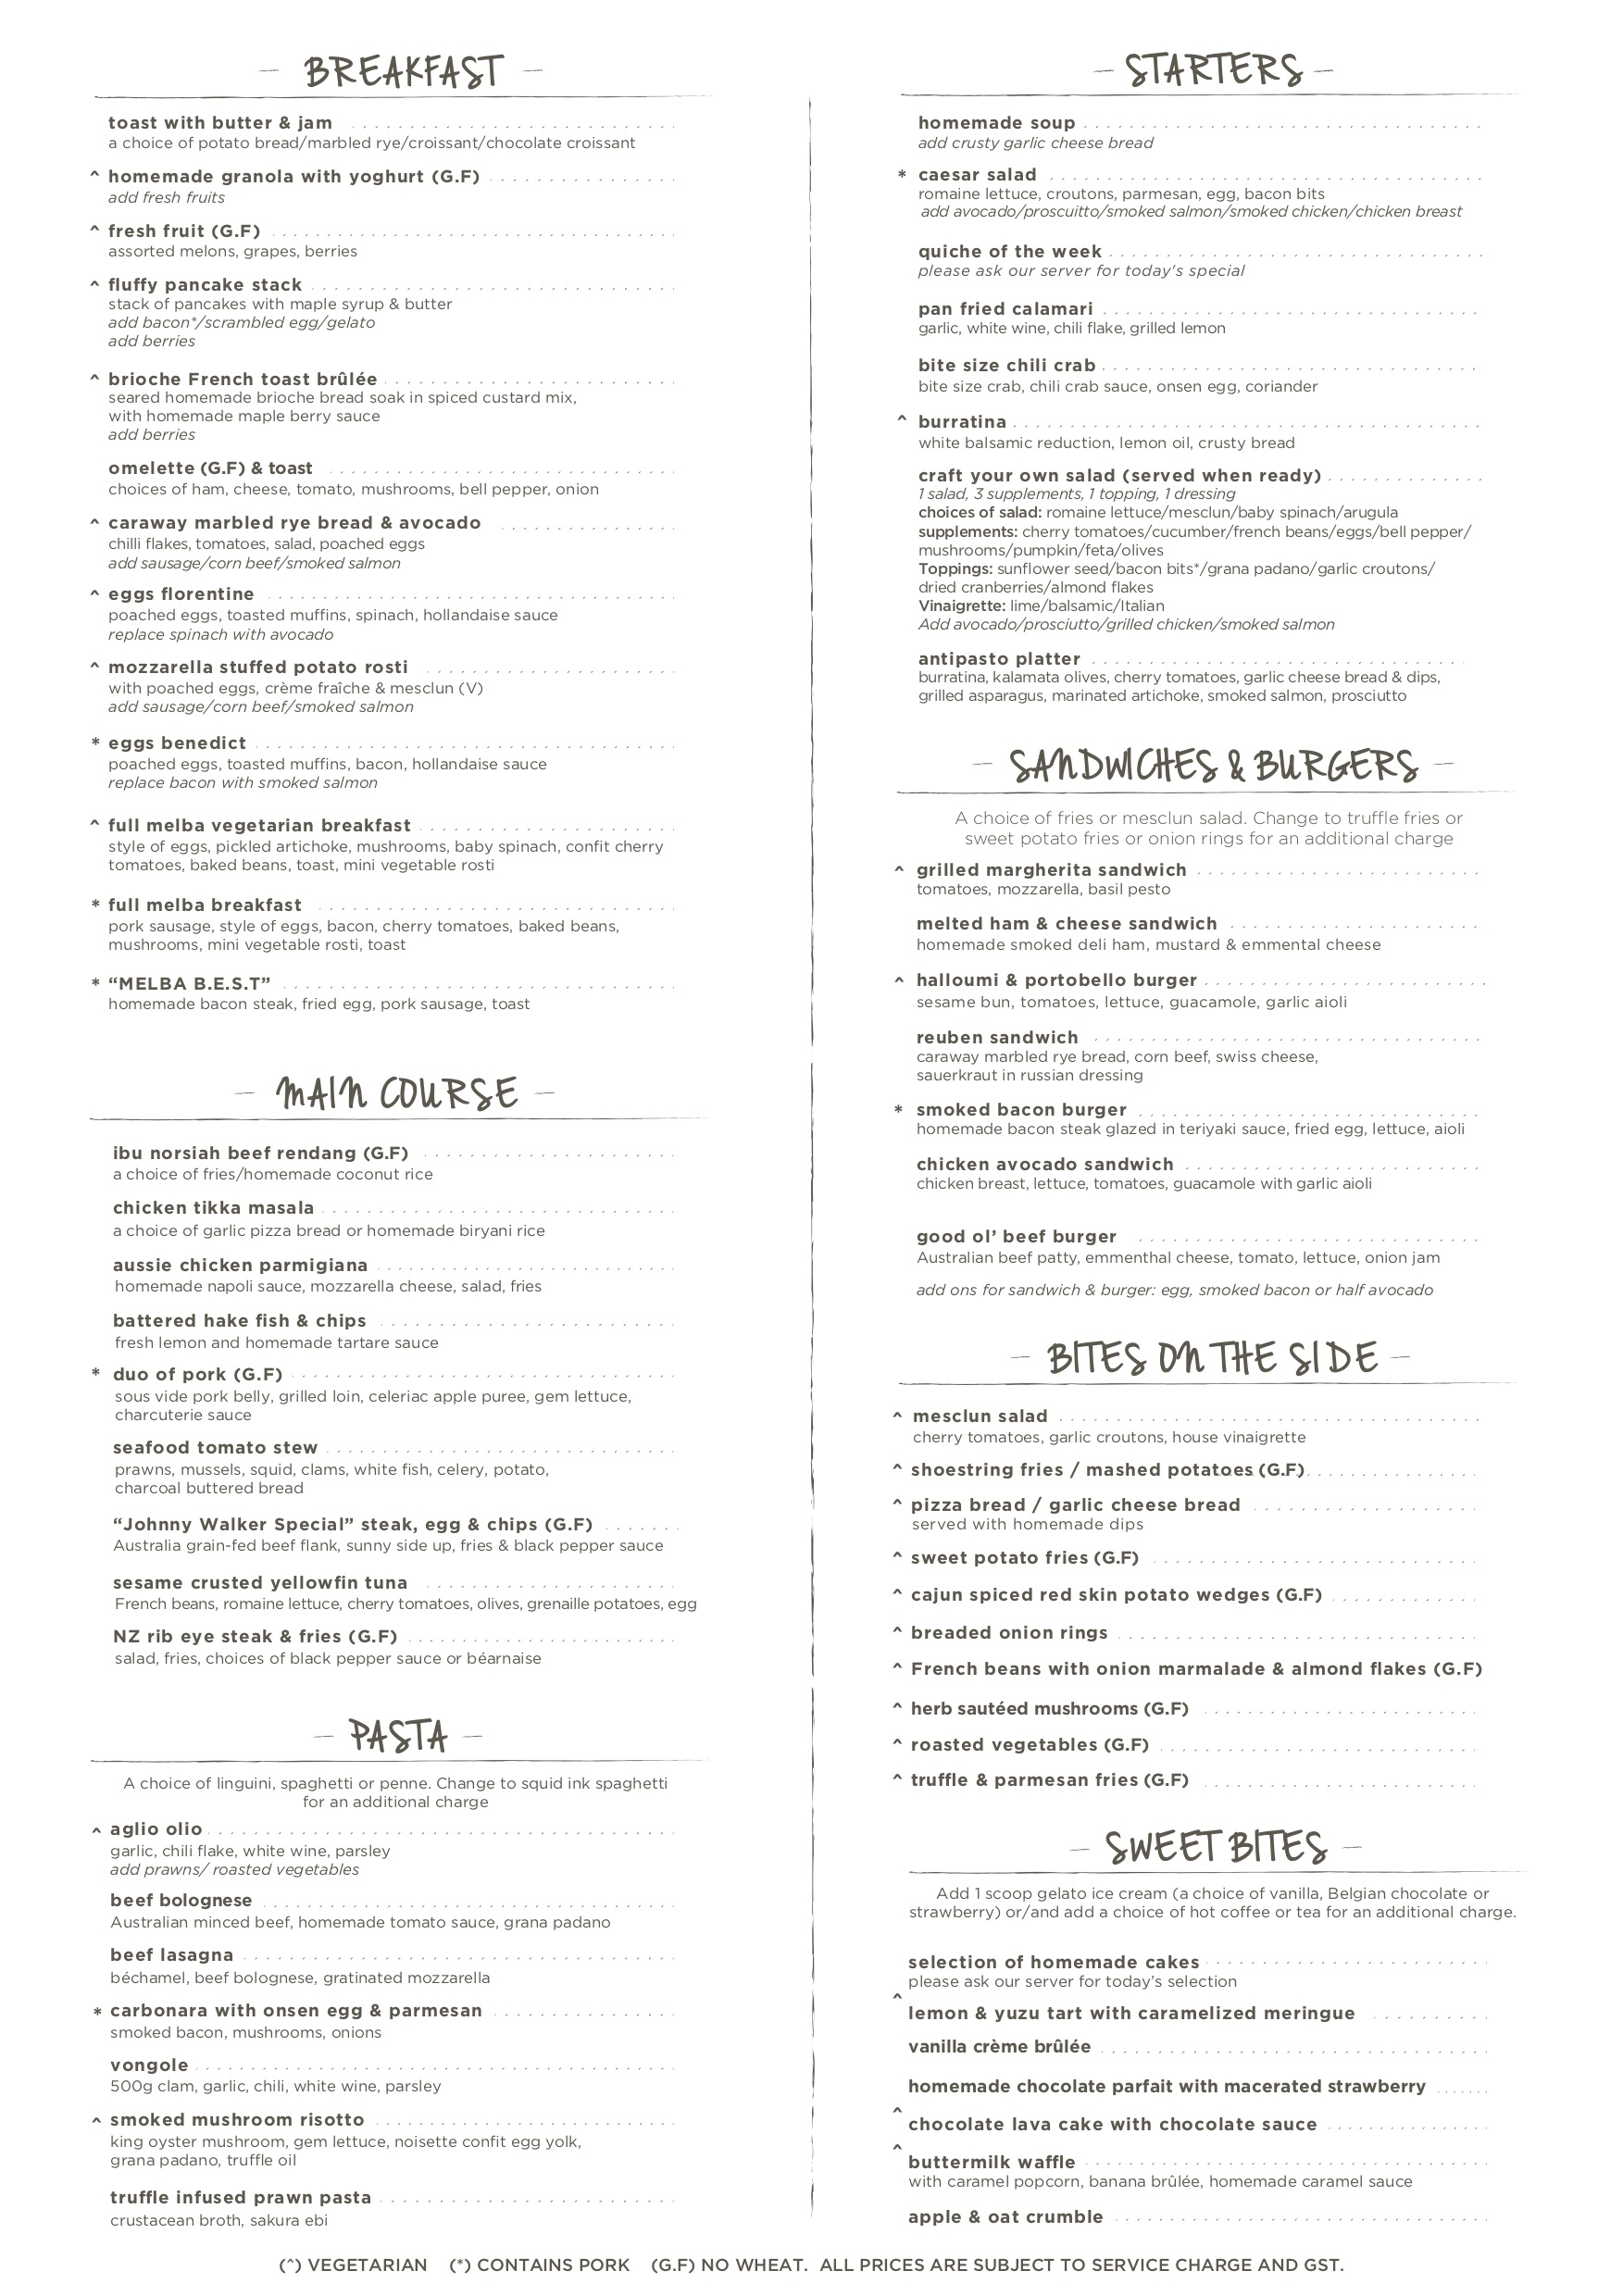 Cafe Melba @ Mediapolis - Menu Pg1 - TREAT